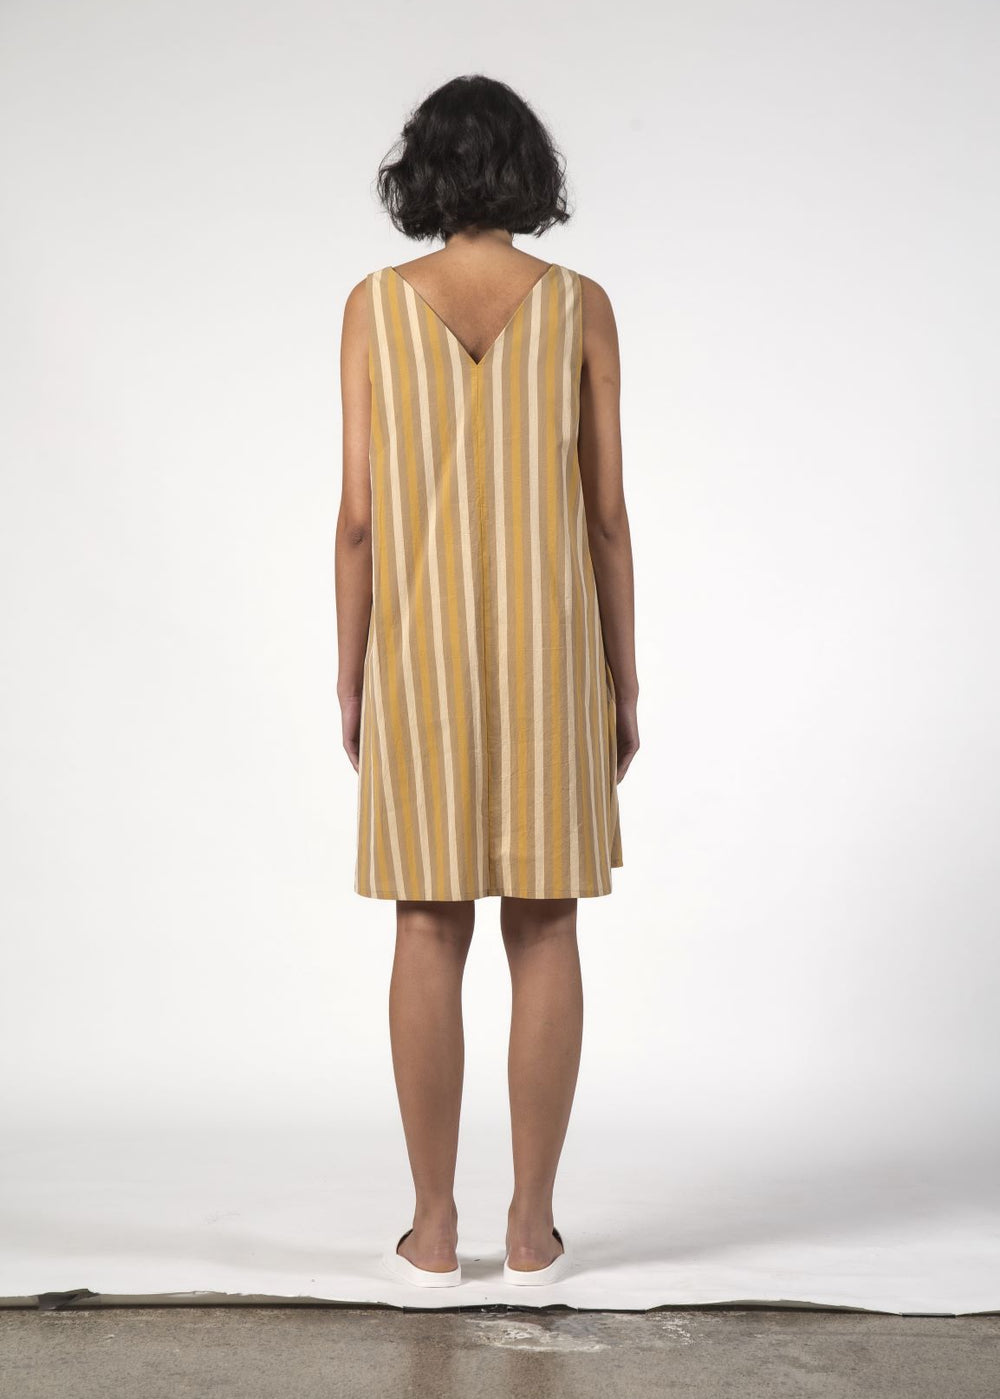 ESTELLE DRESS - Beach Stripe